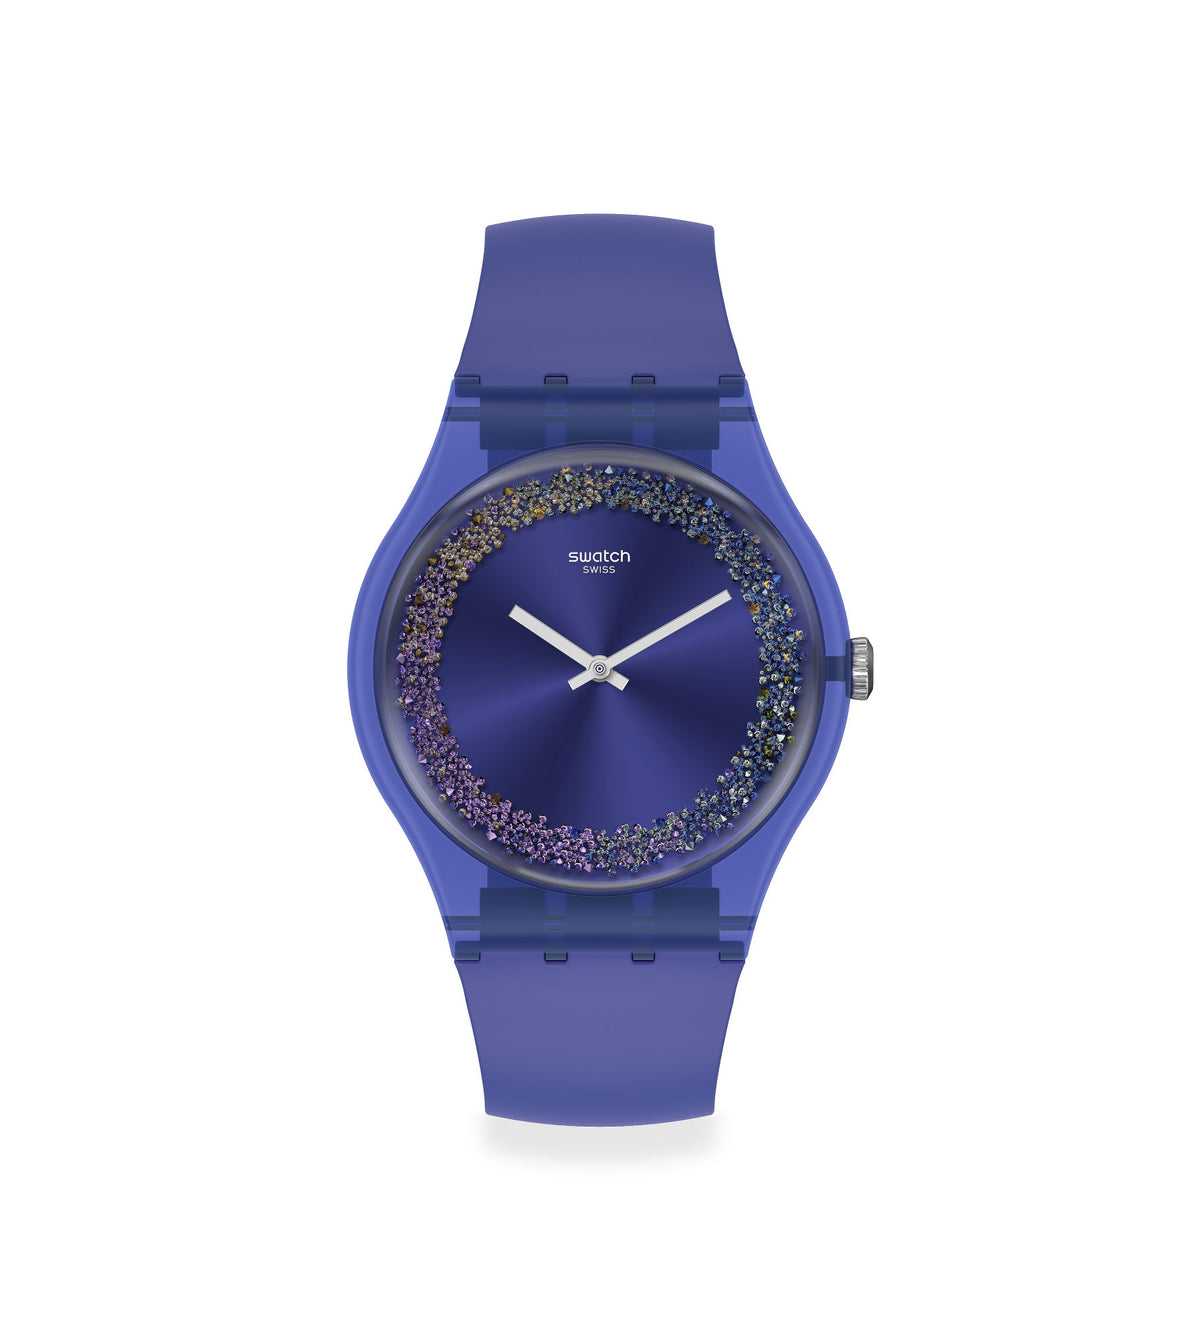 Swatch Watch 41mm - Purple Rings